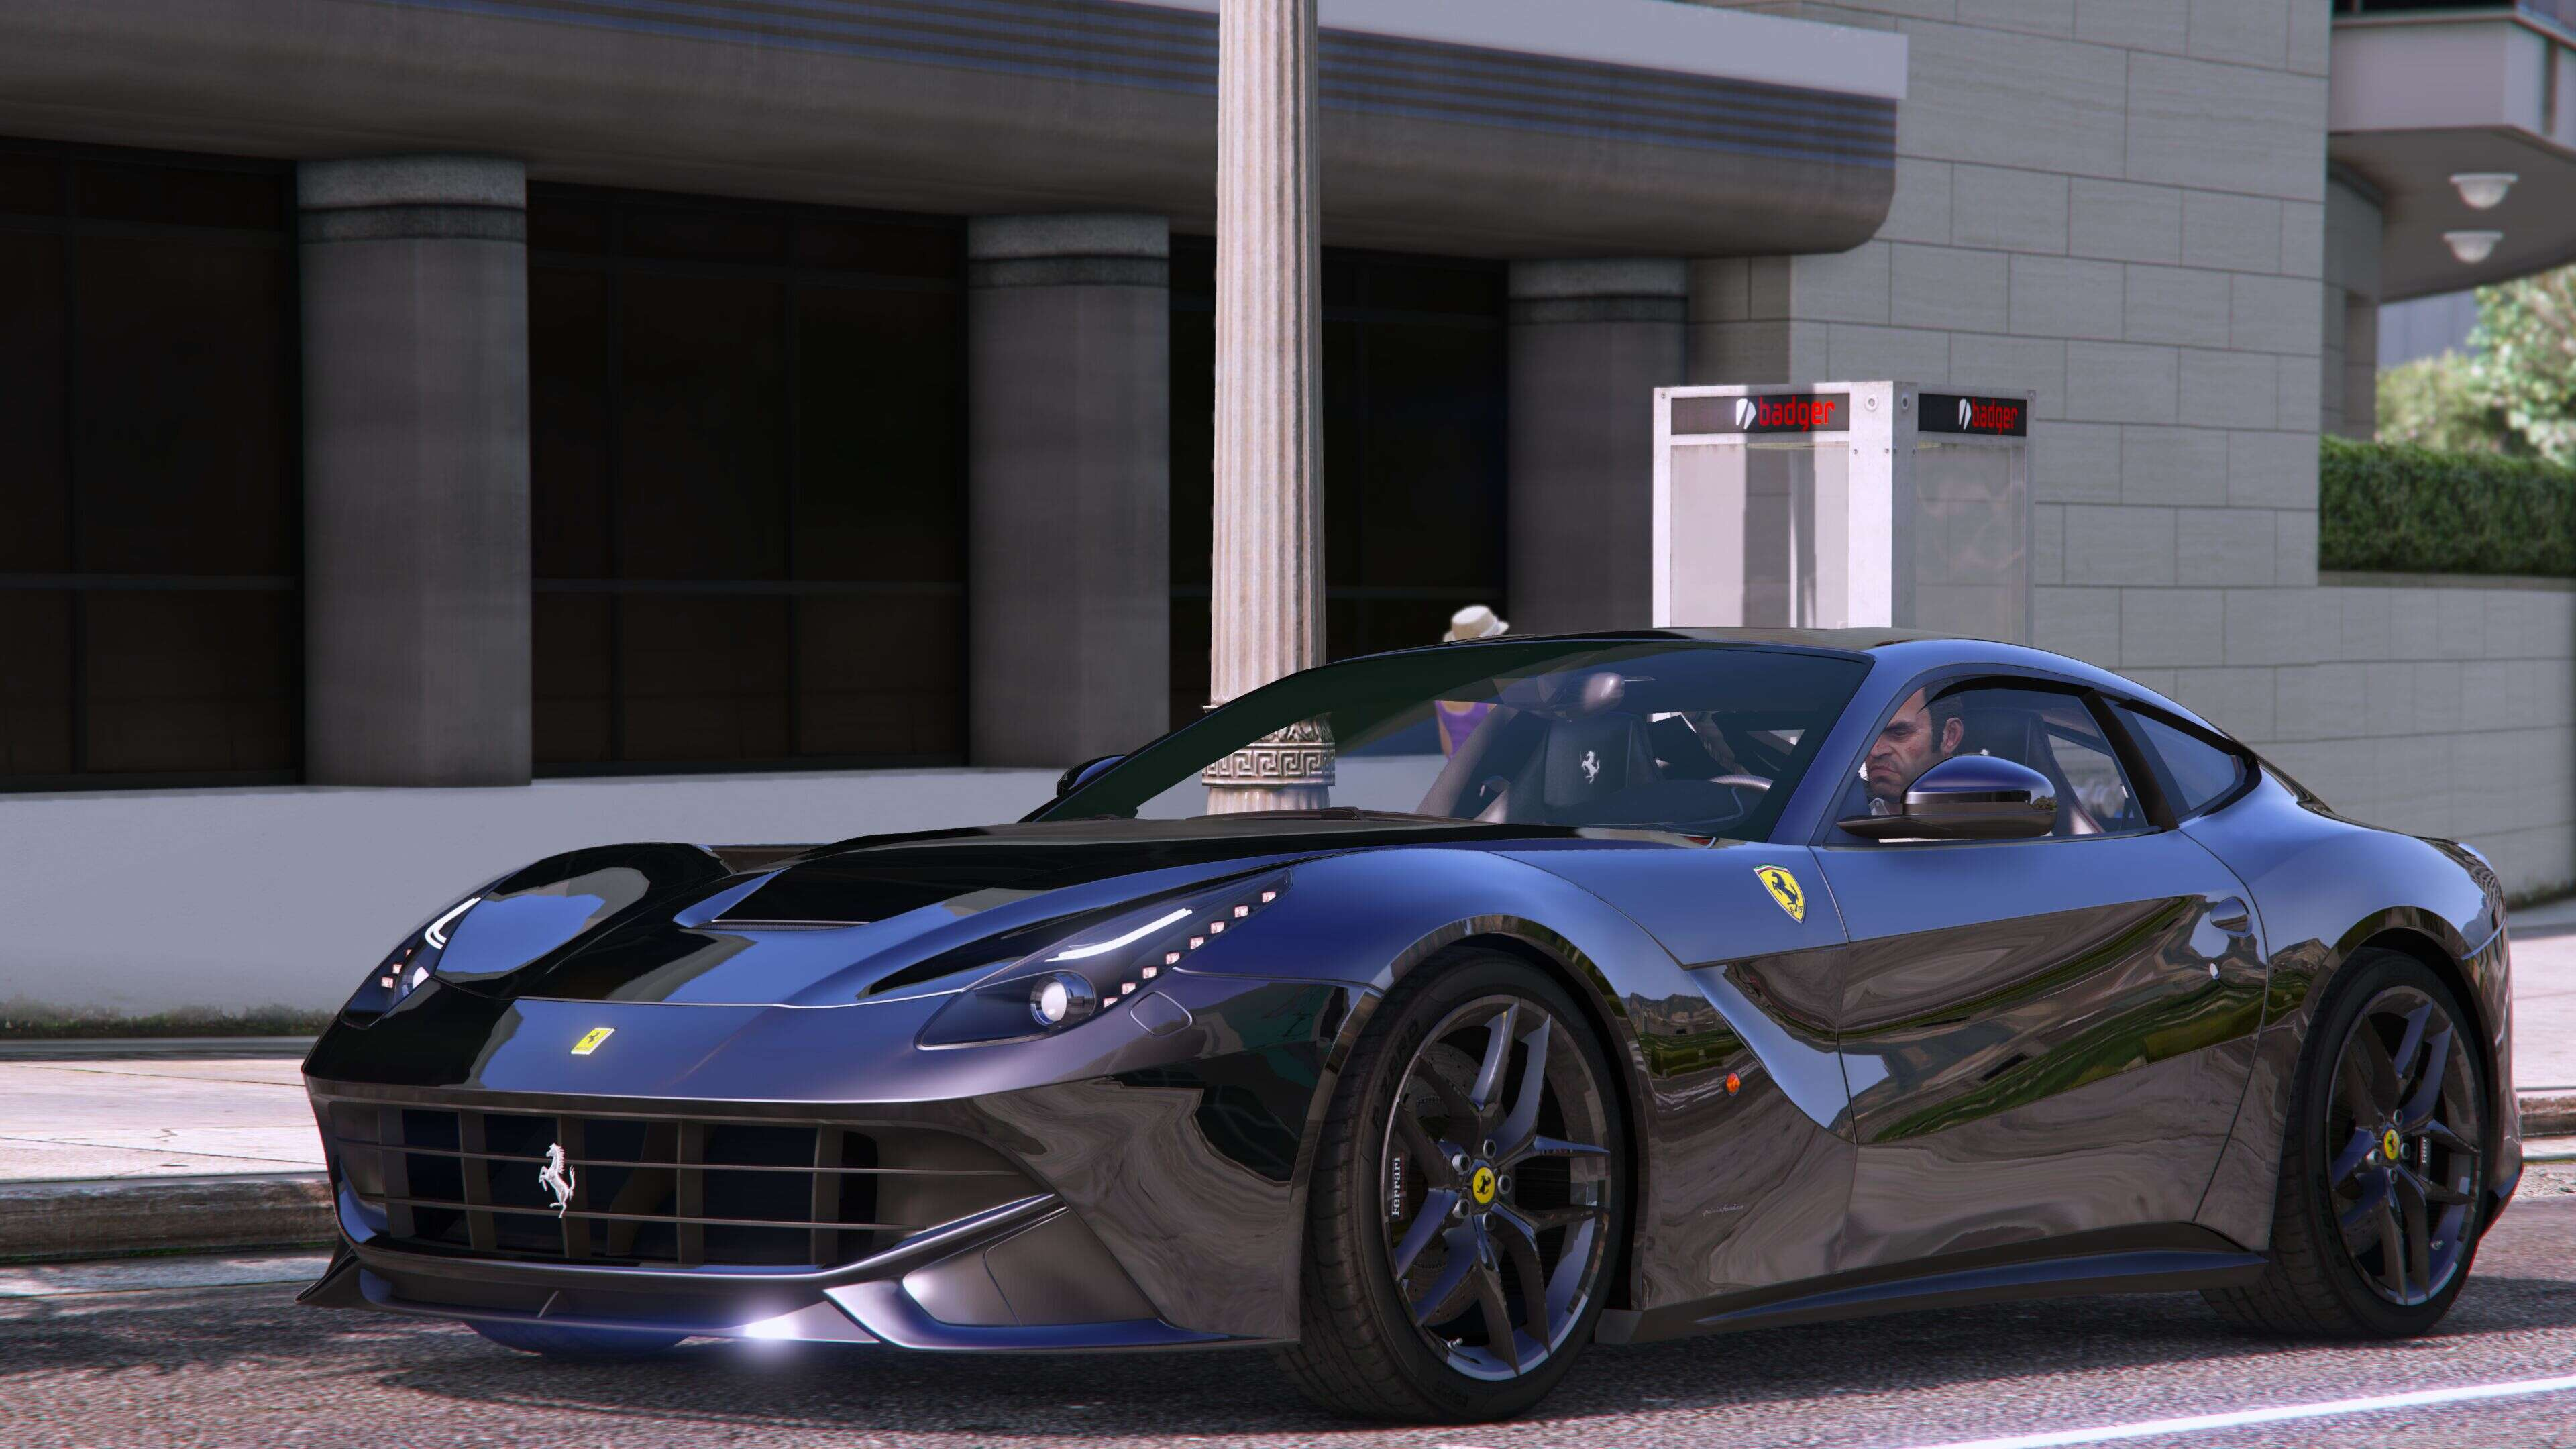 2013 ferrari f12 berlinetta - gta5-mods